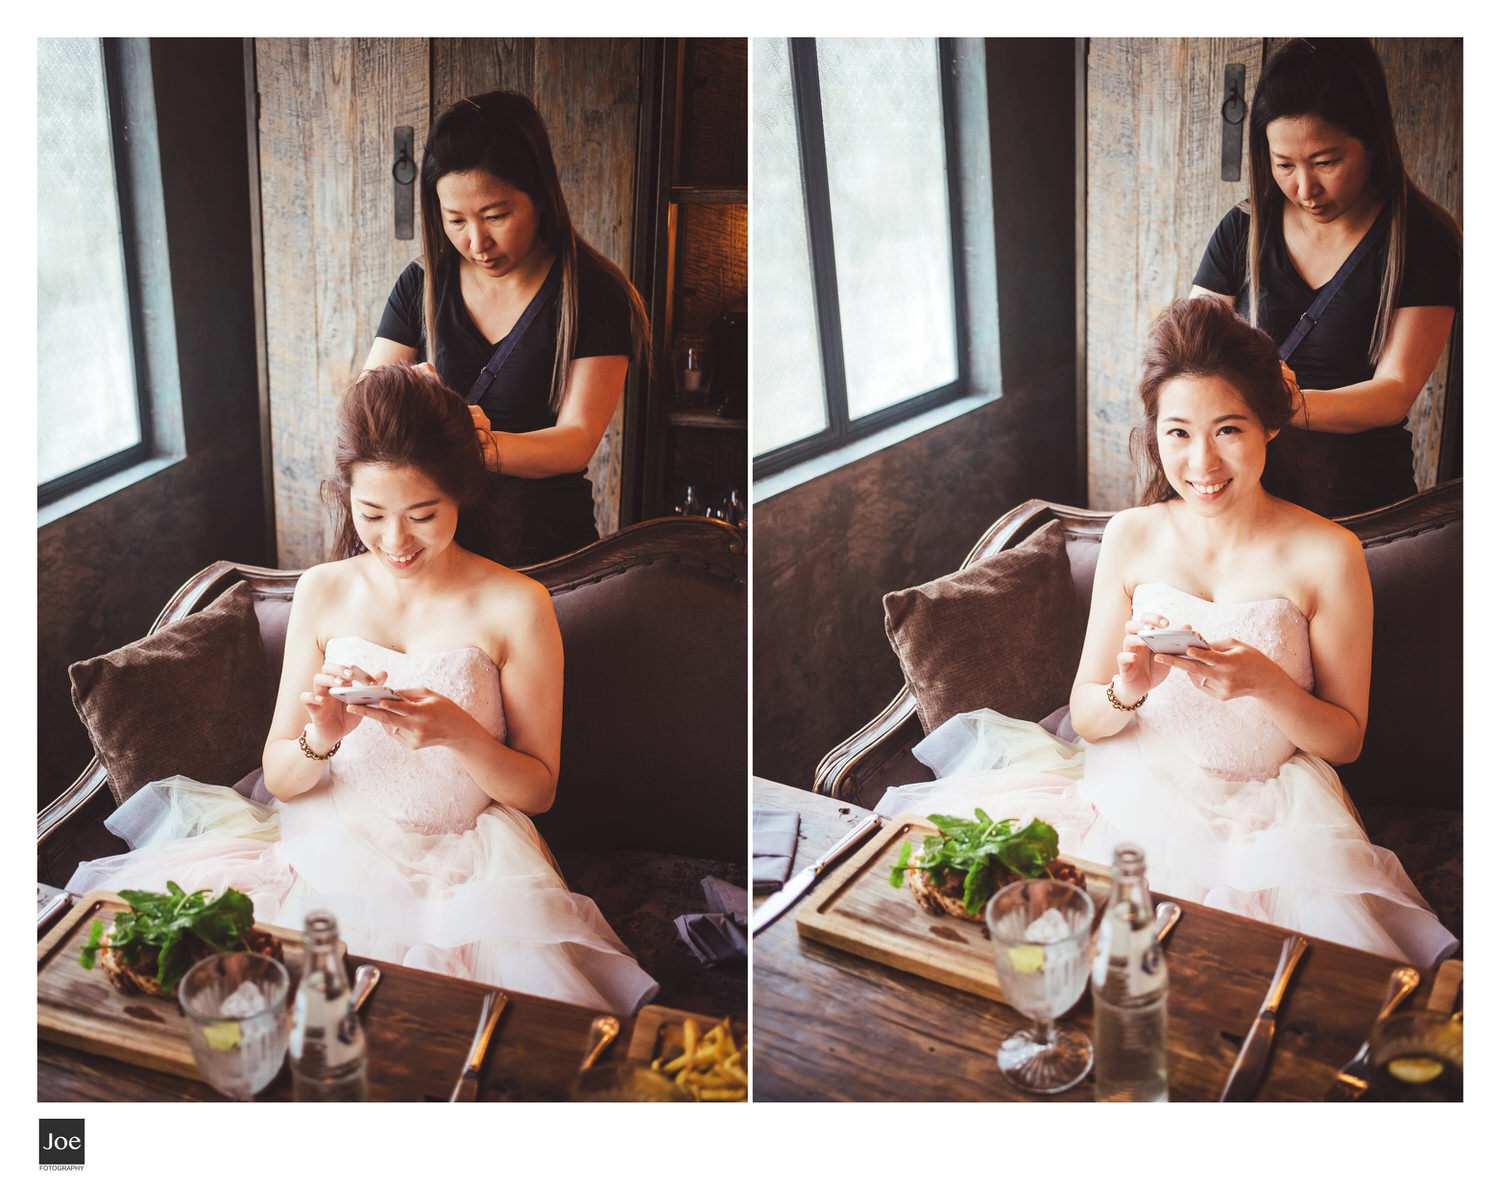 joe-fotography-30-bali-seminyak-the-bistot-pre-wedding-amelie.jpg